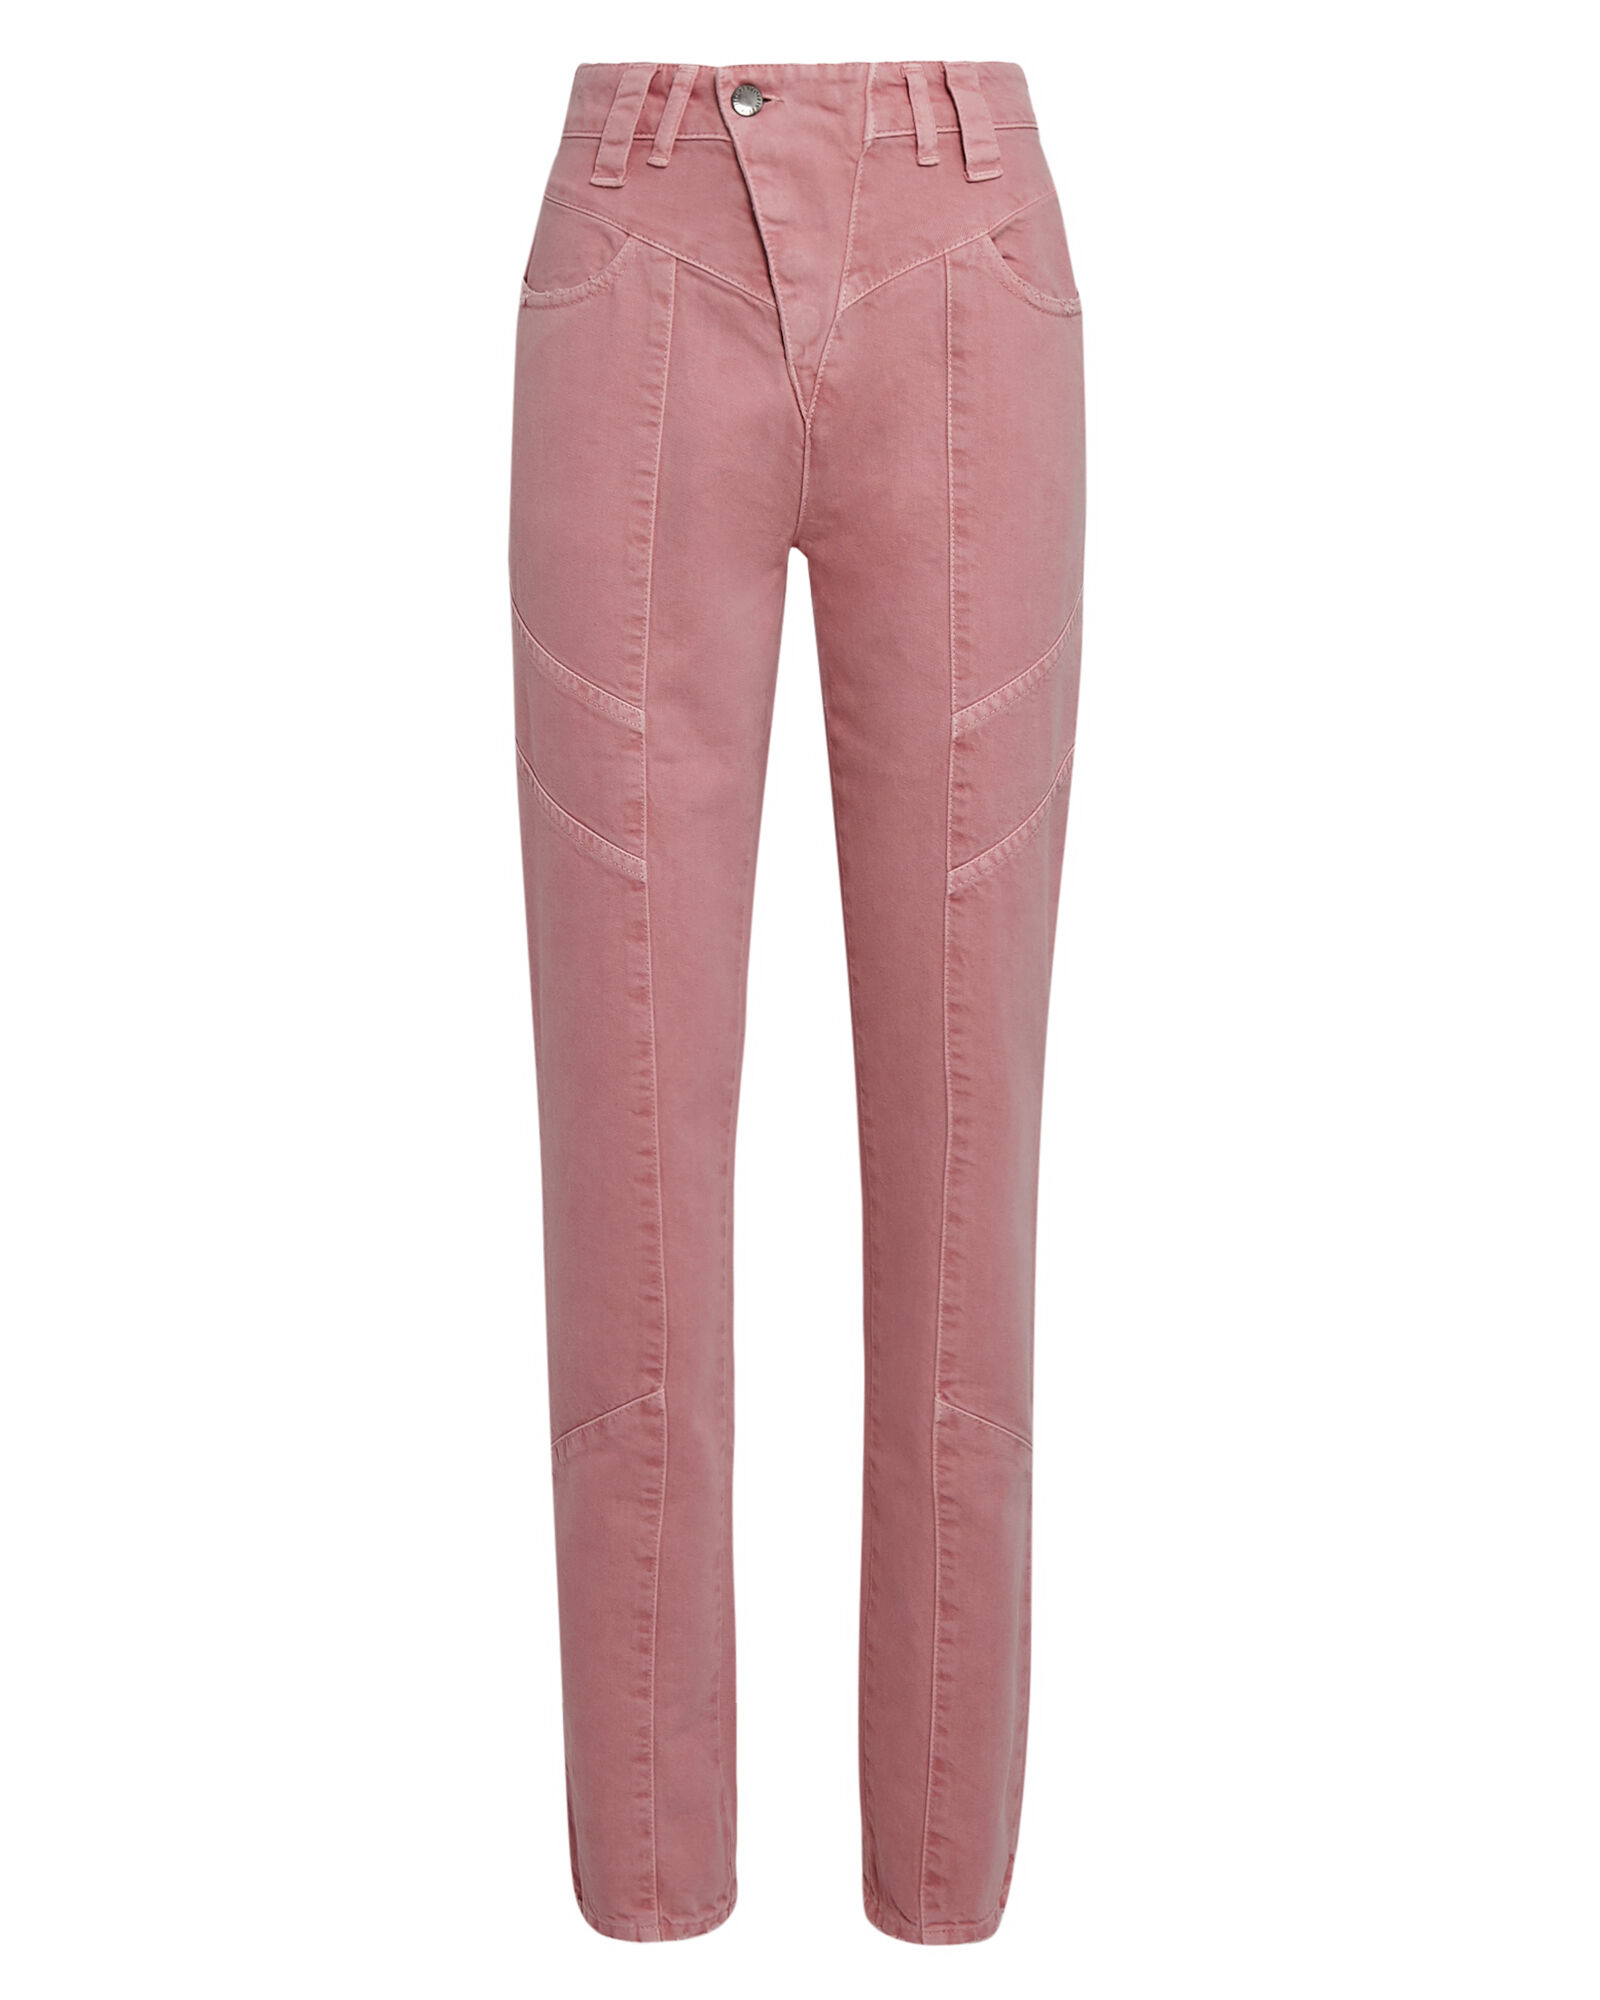 Taylor High-Rise Jeans, PINK, hi-res